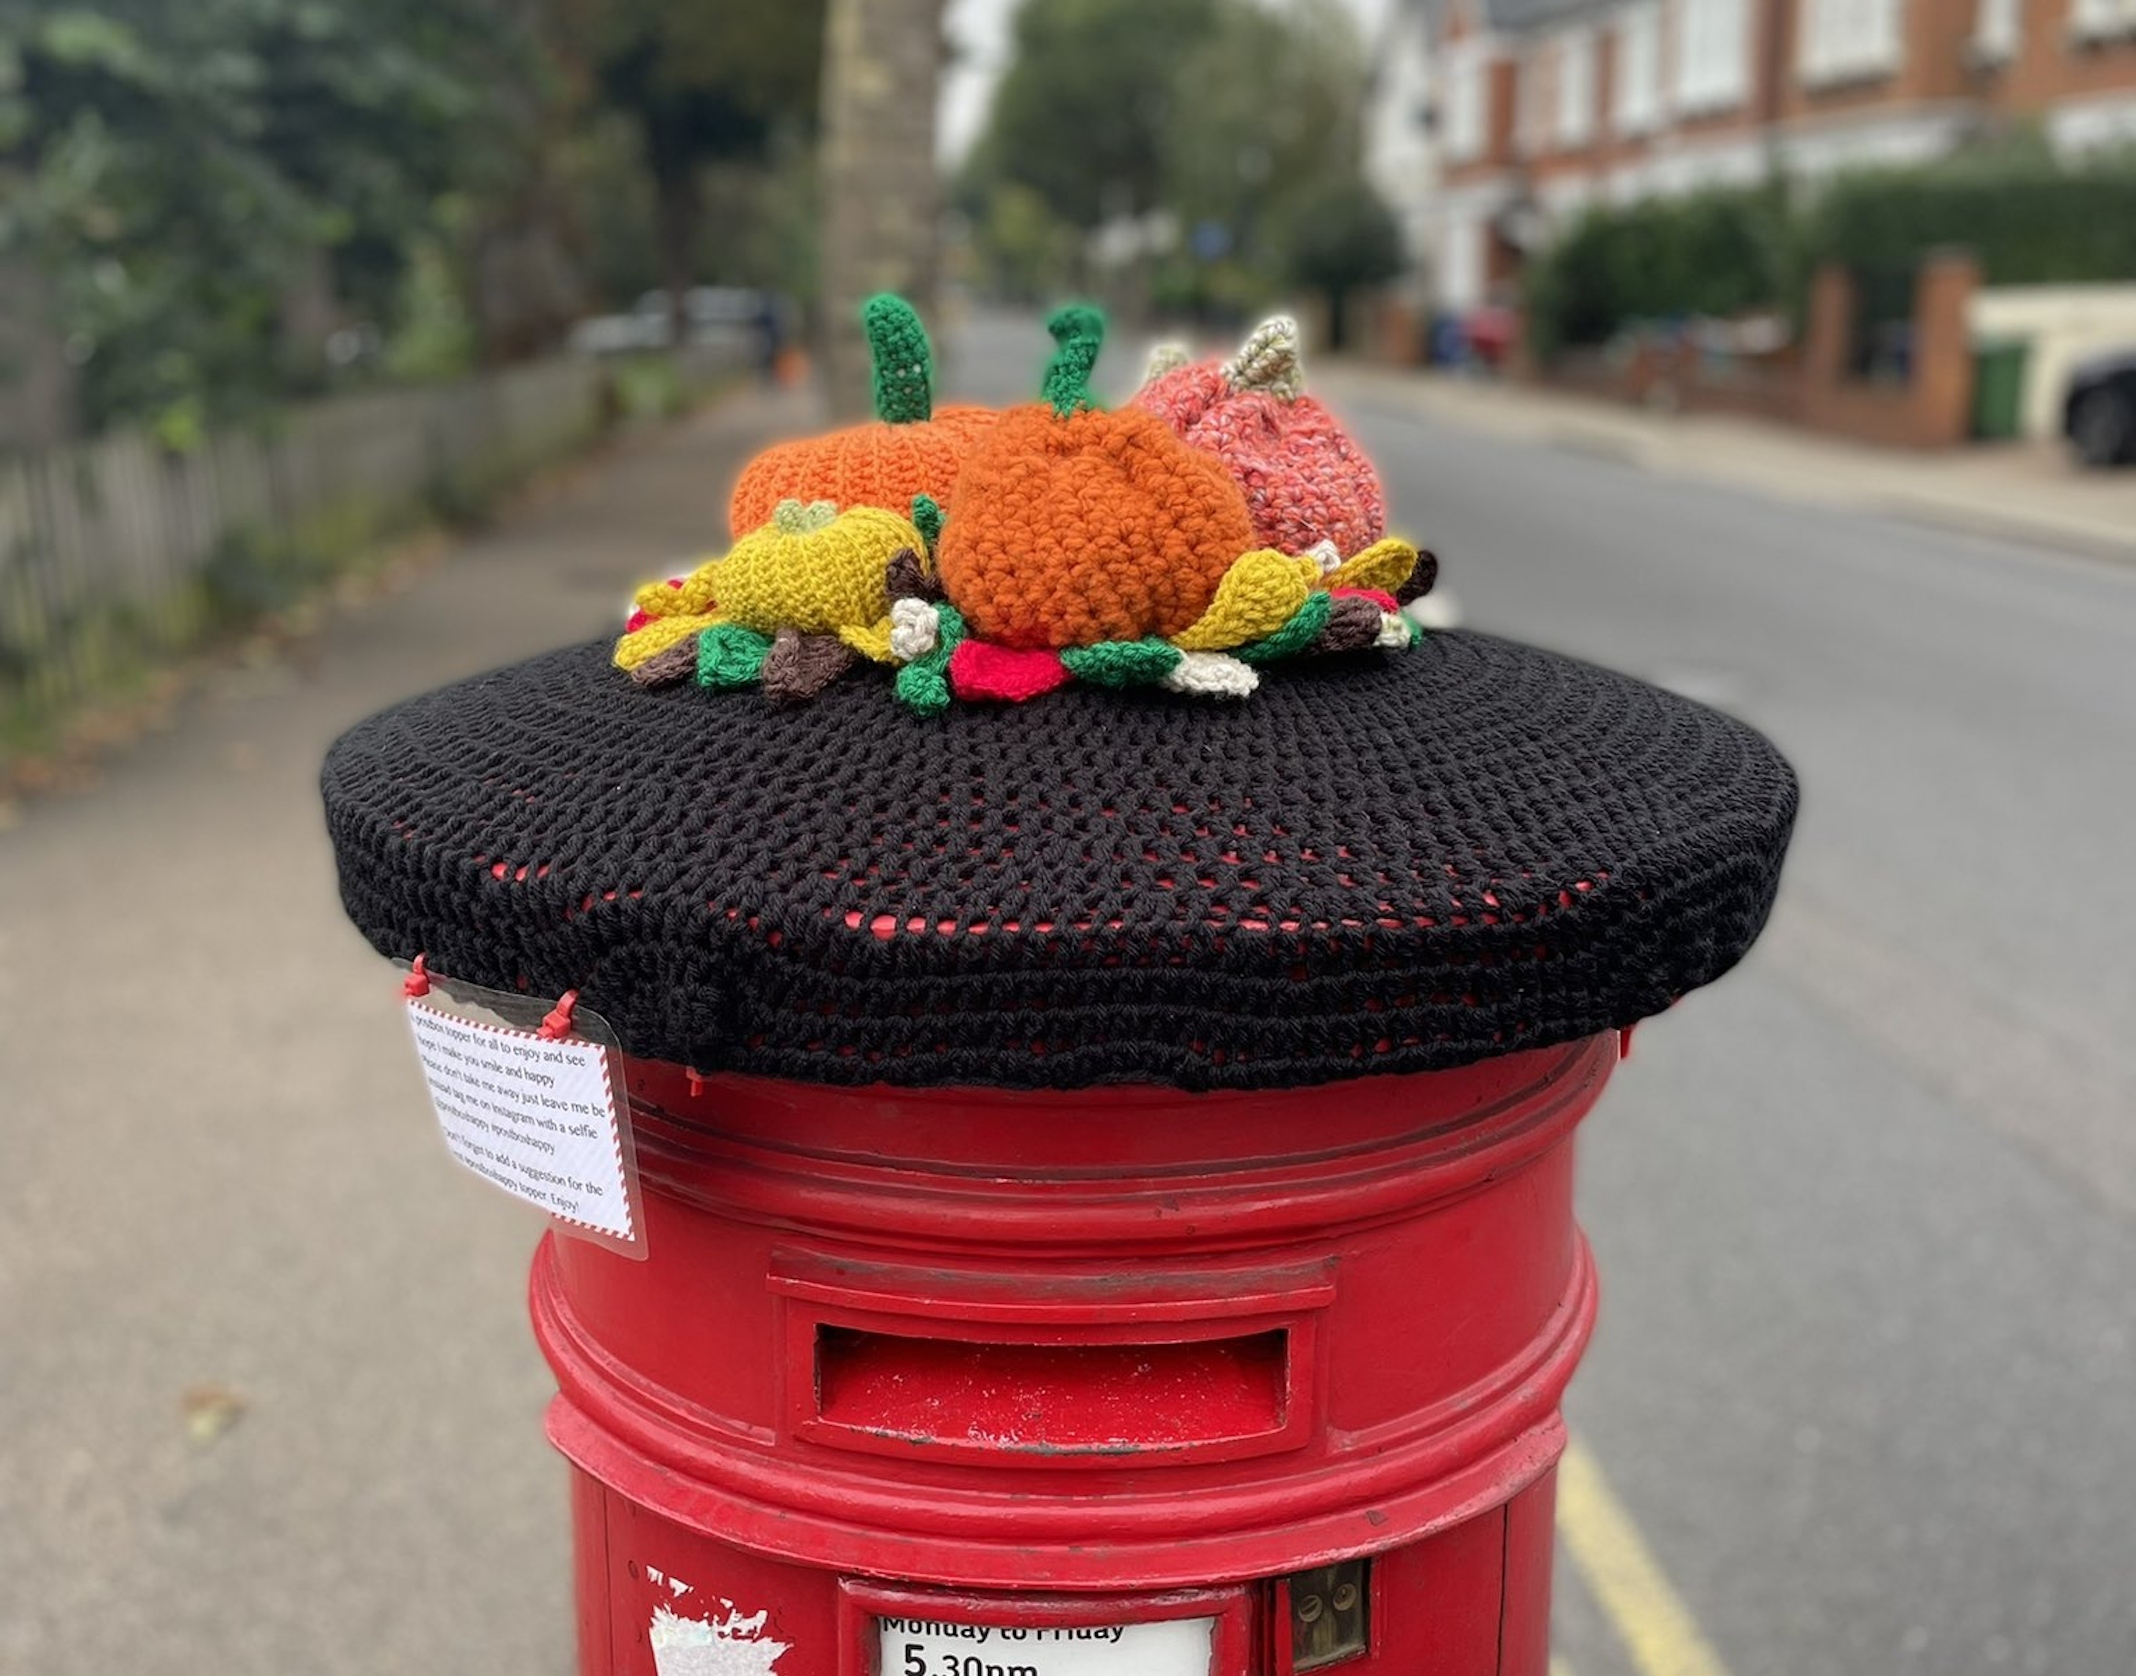 Crochet hats for postboxes are taking over south London